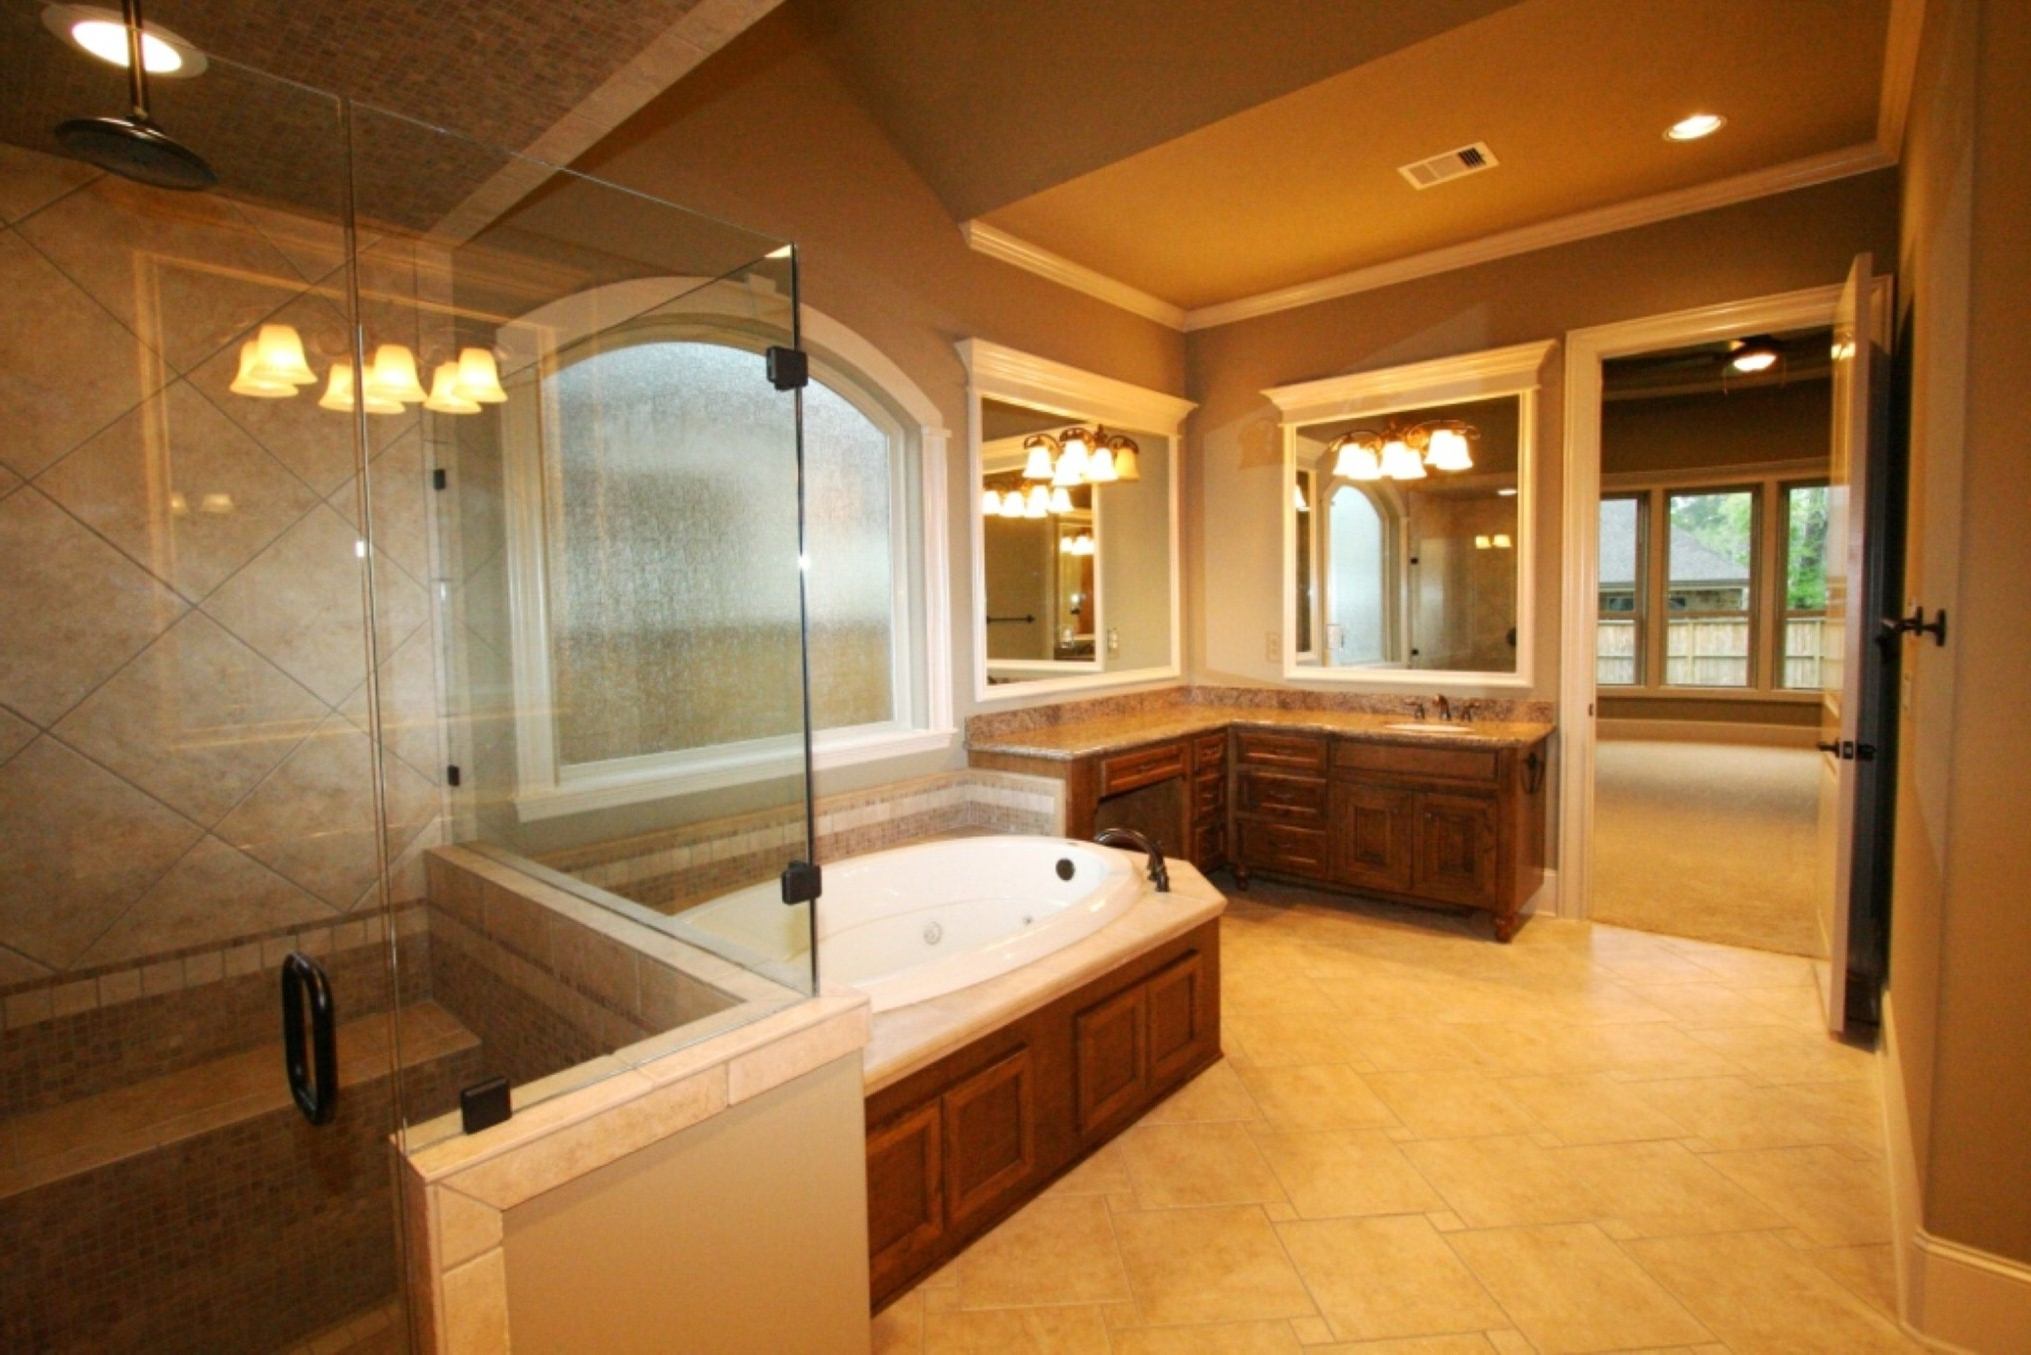 Neat Inspirational Oval Bathtub And Glass Shower Door Design Feat Corner Vanity Idea In Compact Master Bathroom (Image 19 of 21)